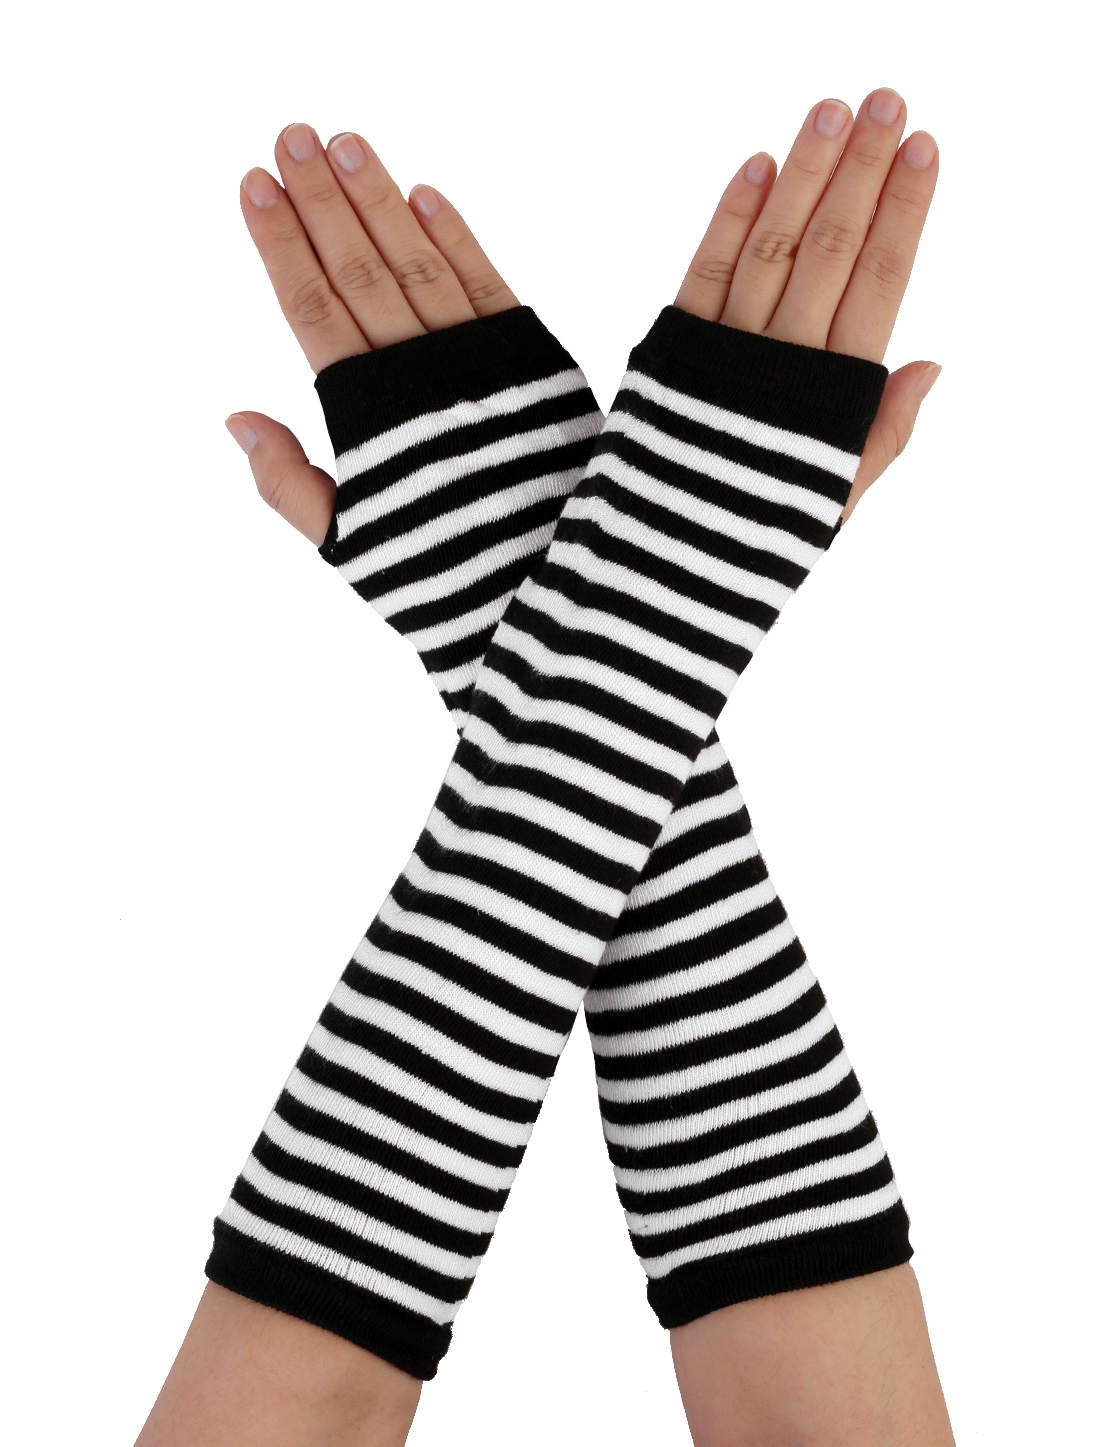 Pair White Black Stripes Acrylic Fingerless Arm Warmers Gloves for Women